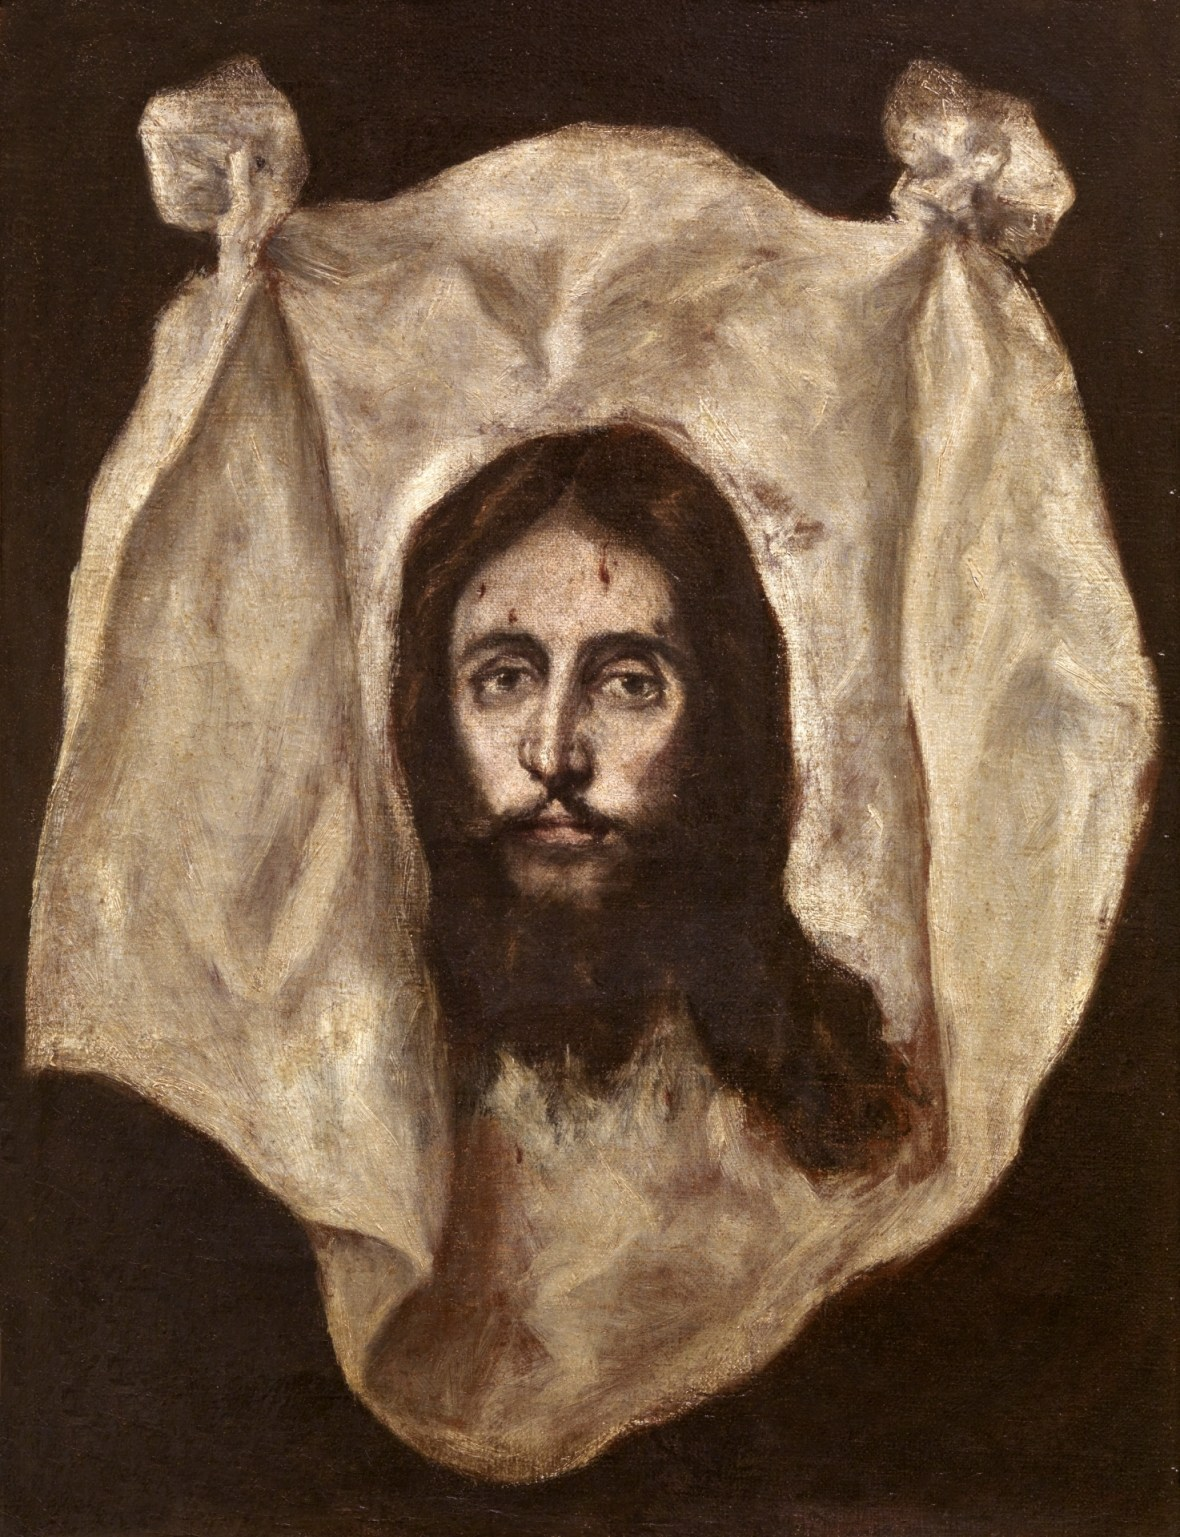 El Greco', The Veil of Saint Veronica, 1586 to 1595.